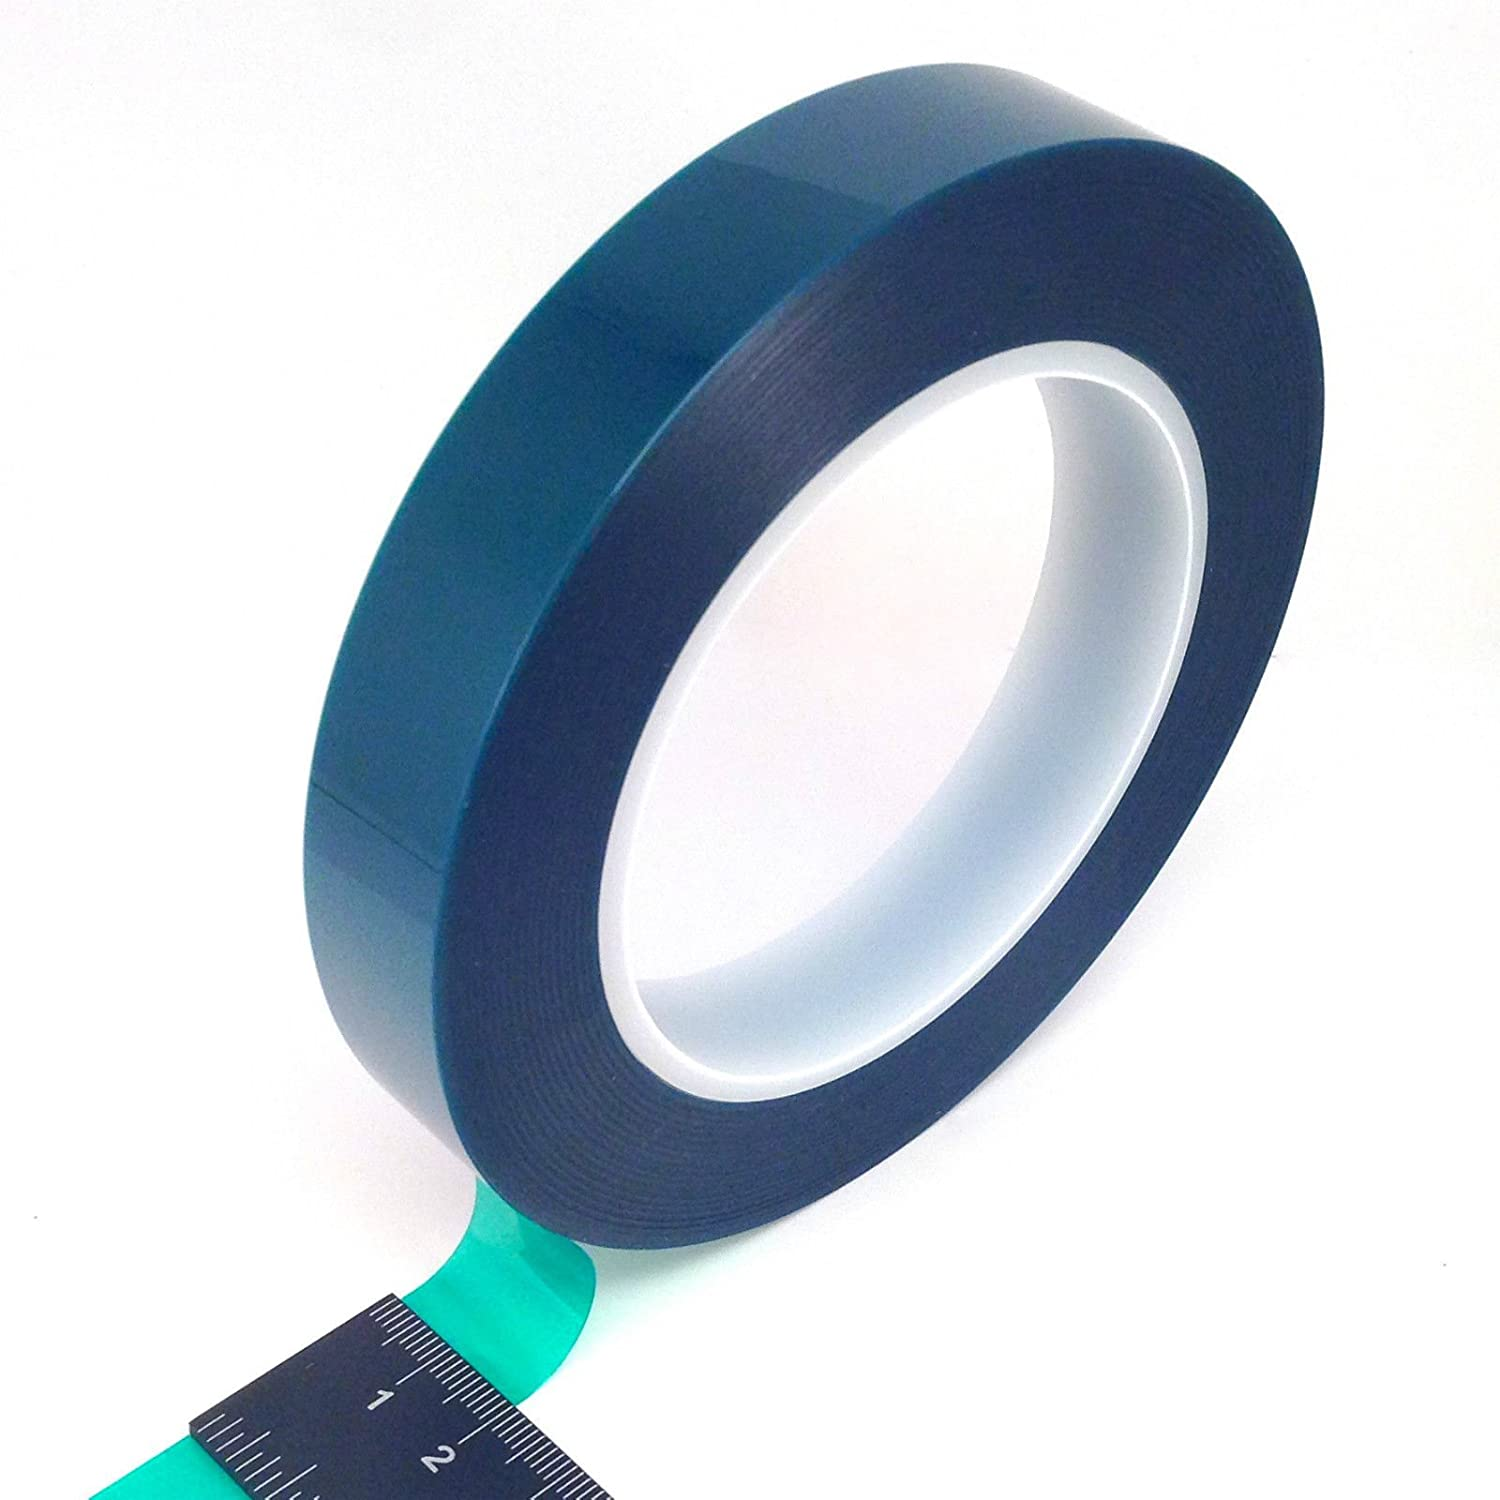 3/4' Wide High Temp Masking Tape for Powder Coating, Custom Painting, Hydrodip, Sublimation - Green Polyester Silicone Adhesive Powder Pro Coating Supply 750GPT